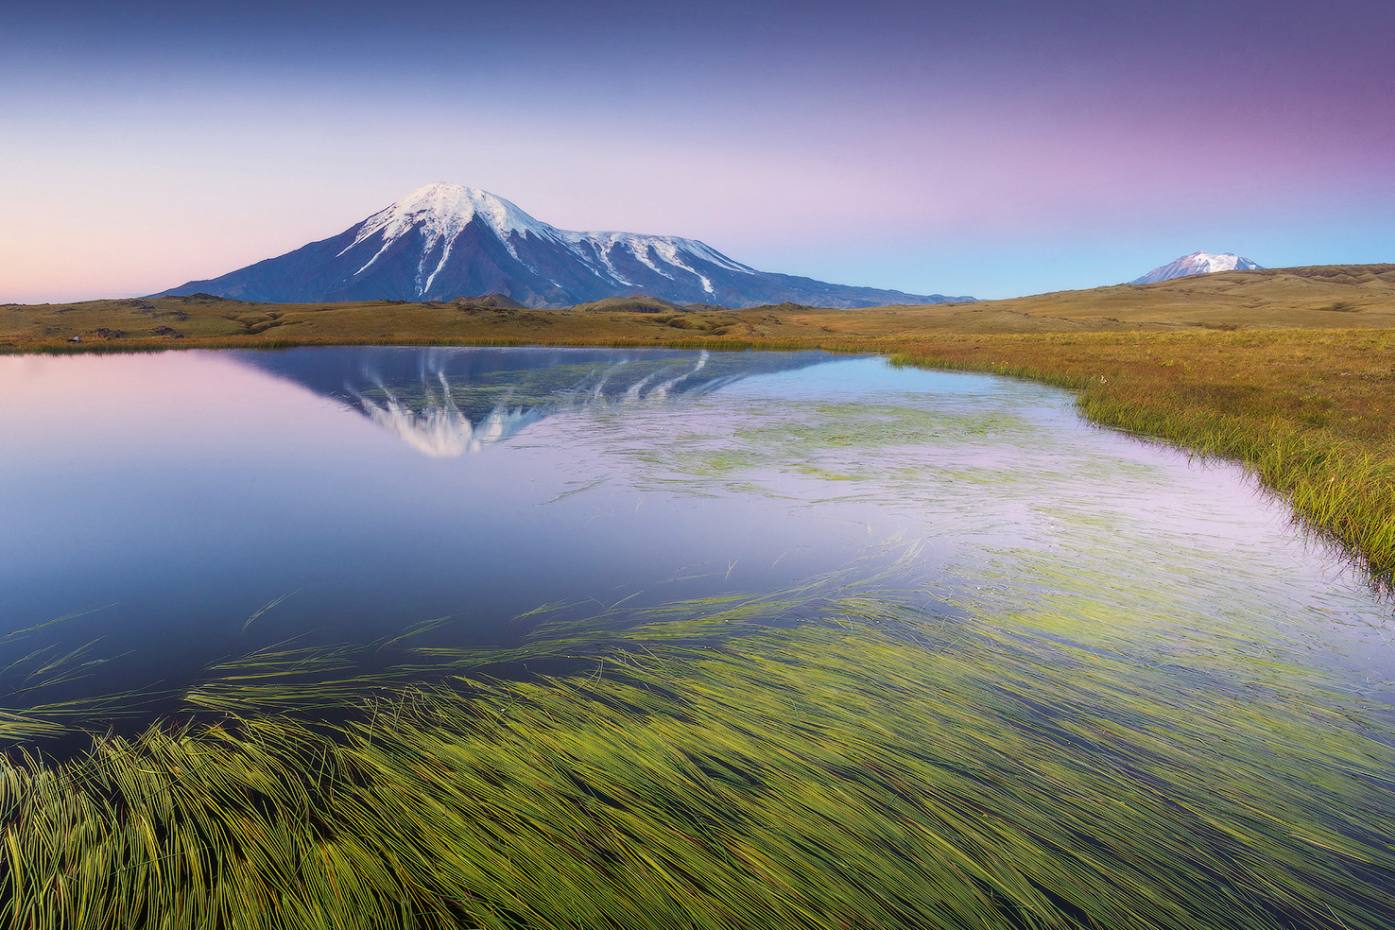 The volcanoes the Kamchatka Peninsula in the fareast of Russia, to be explored in a Natural World Safaris' expedition inAugust